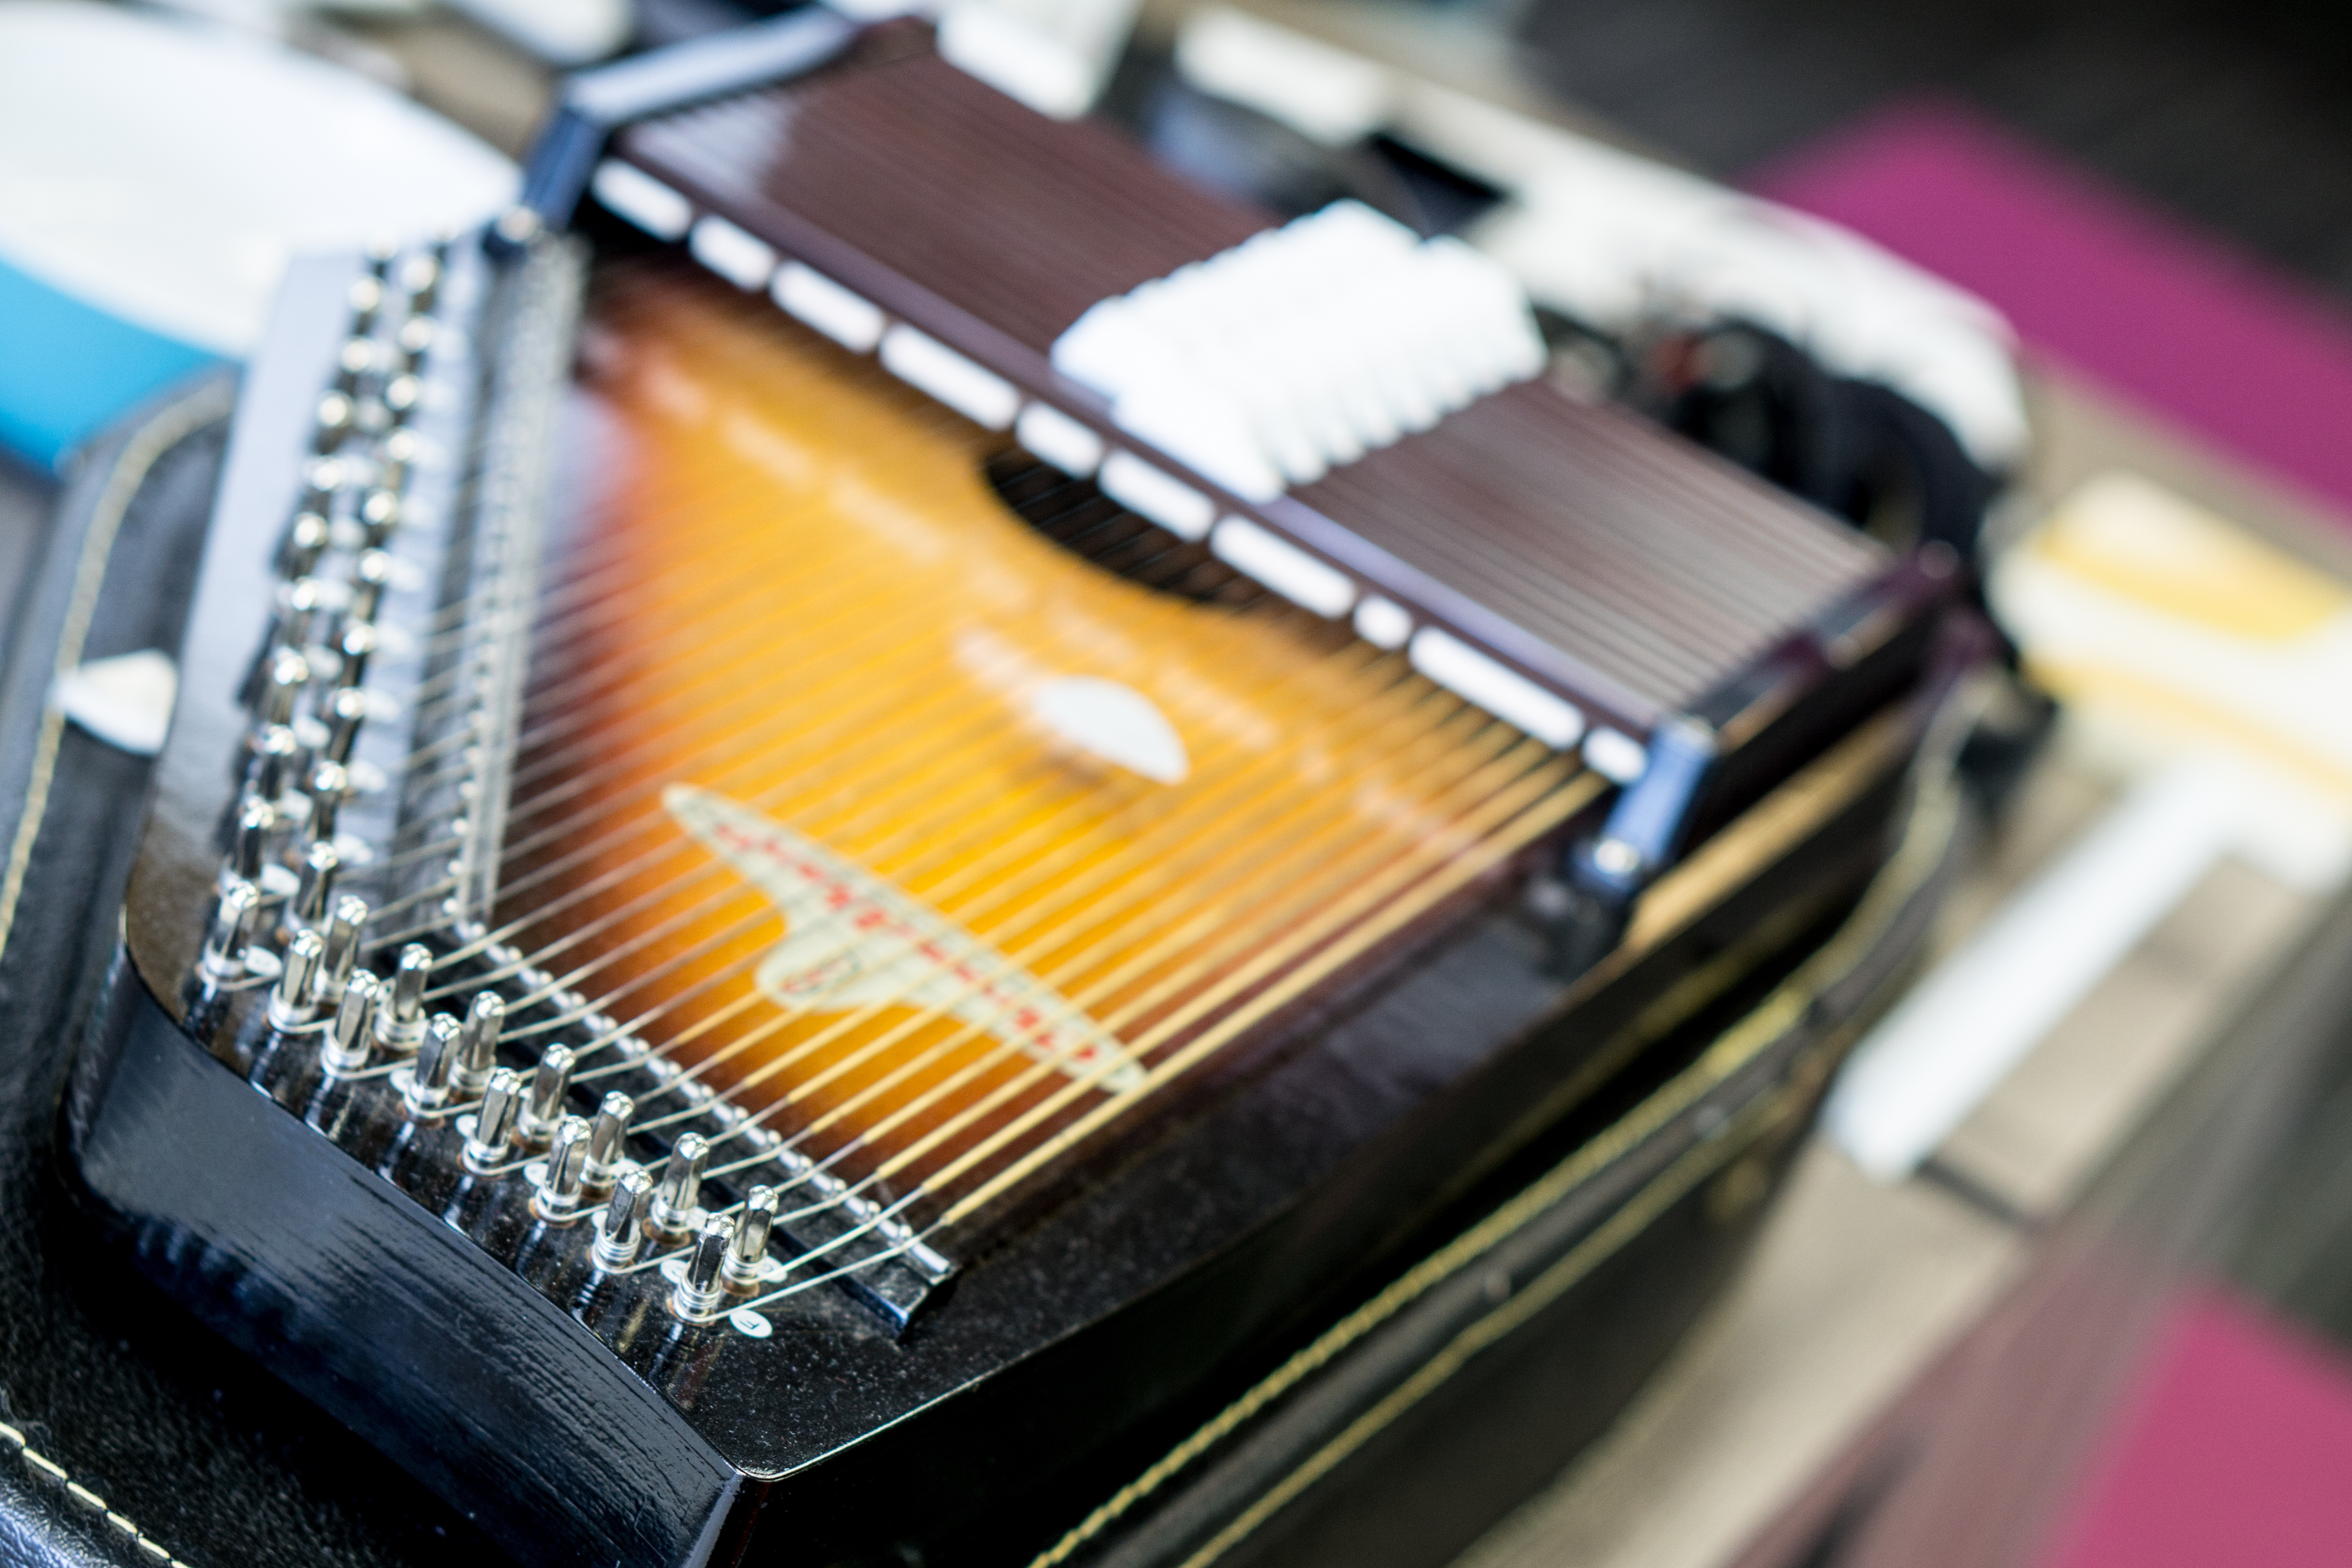 As experimental as she was, Mother Maybelle never hooked up a piezotransducer and fuzz pedal to her autoharp. Where her legacy ends, Little Bird's begins.